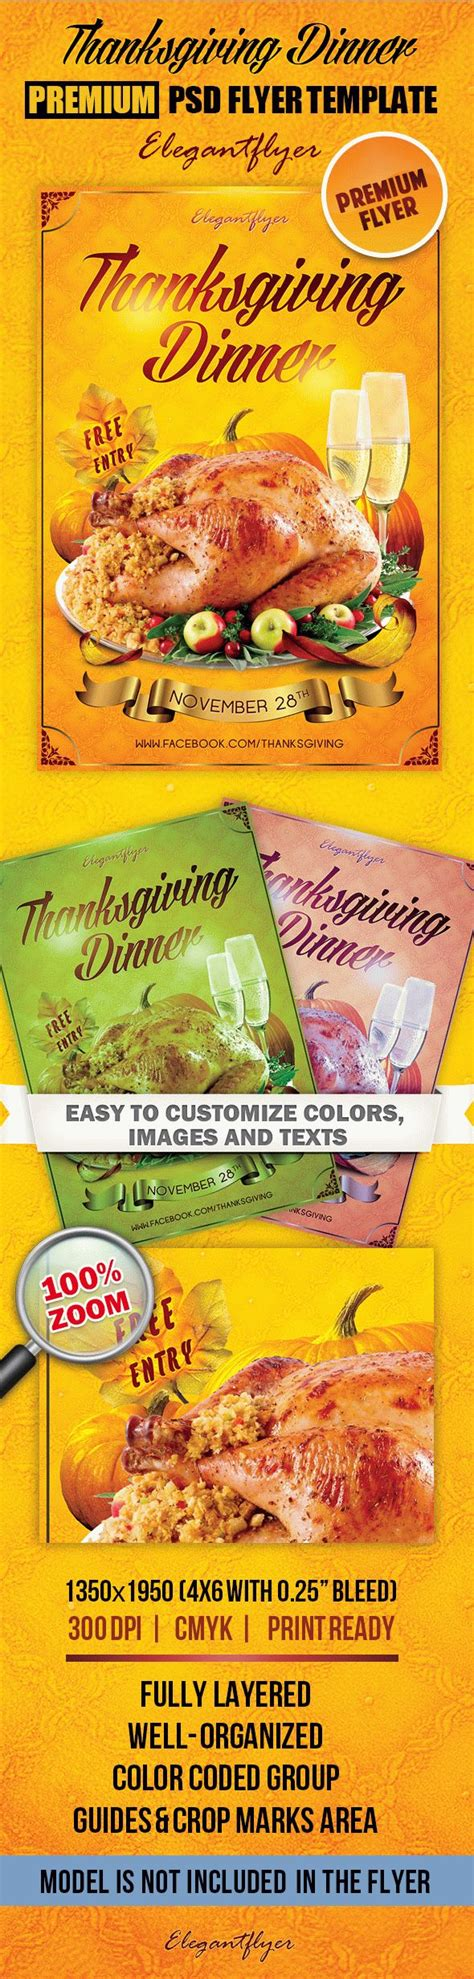 thanksgiving card template psd thanksgiving dinner design flyer by elegantflyer